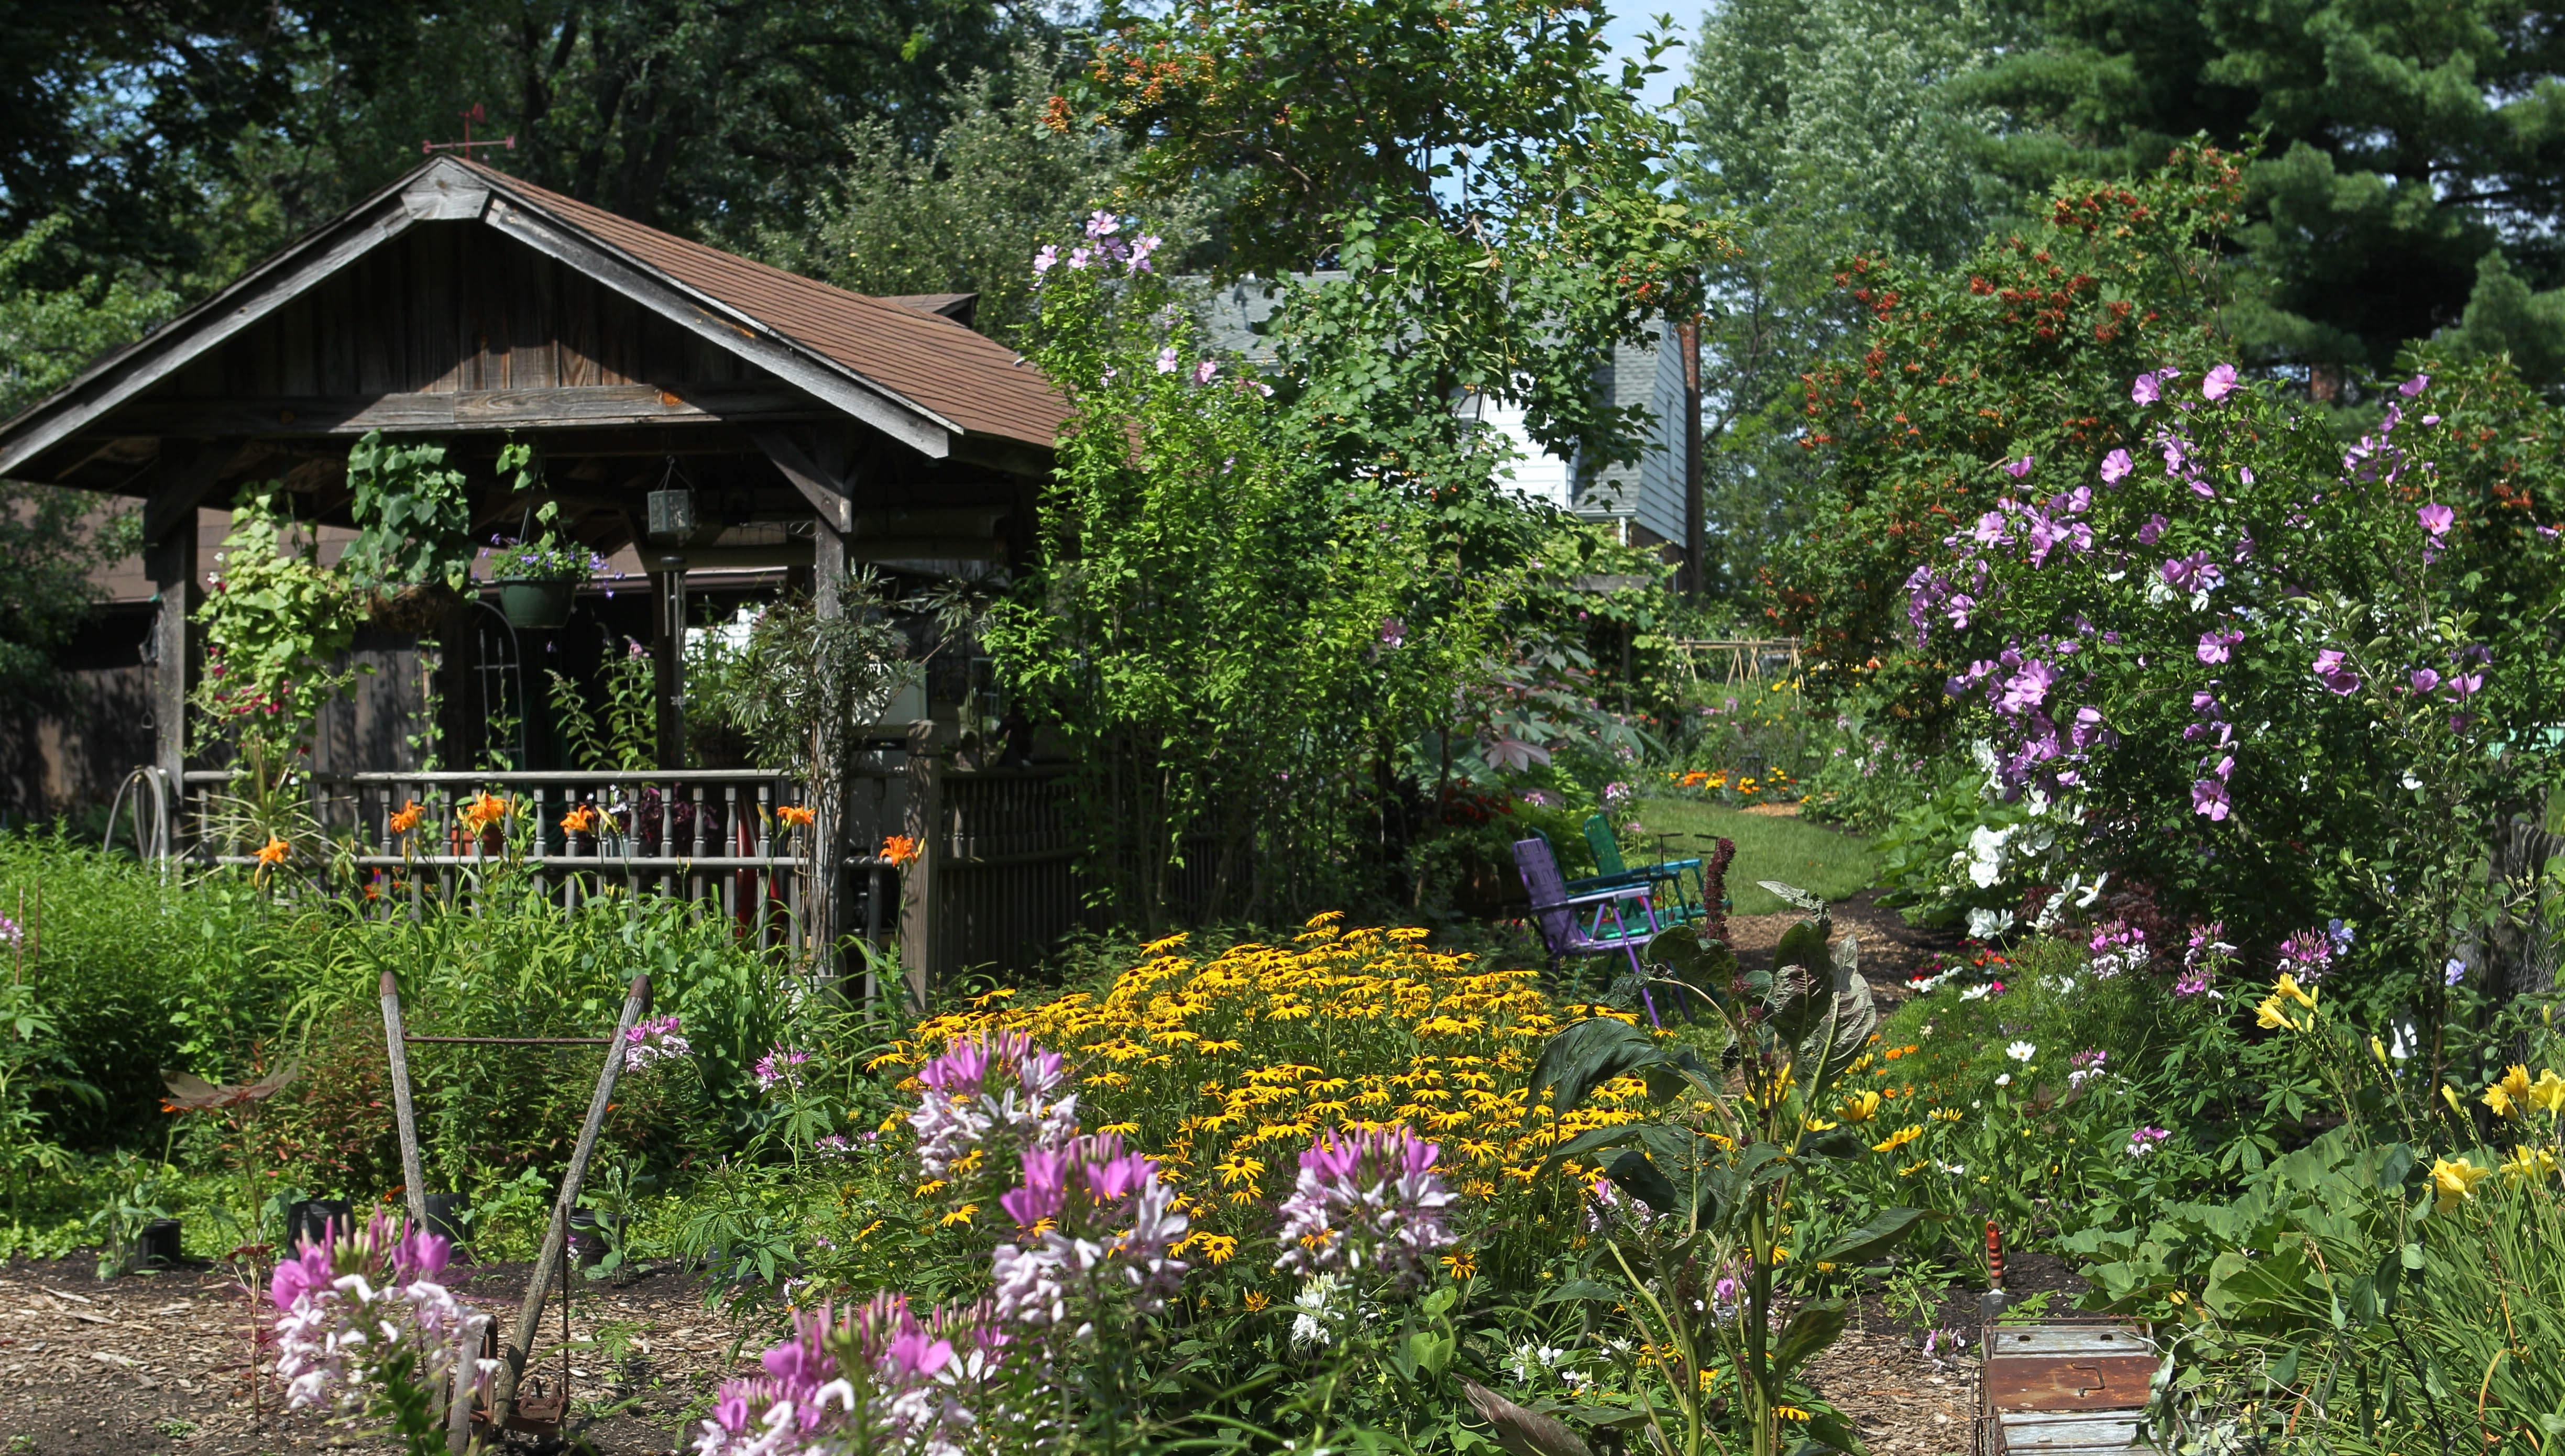 Long- and late-blooming plants and an outdoor structure enable Linda and Brian Blyth to enjoy summer well into September.